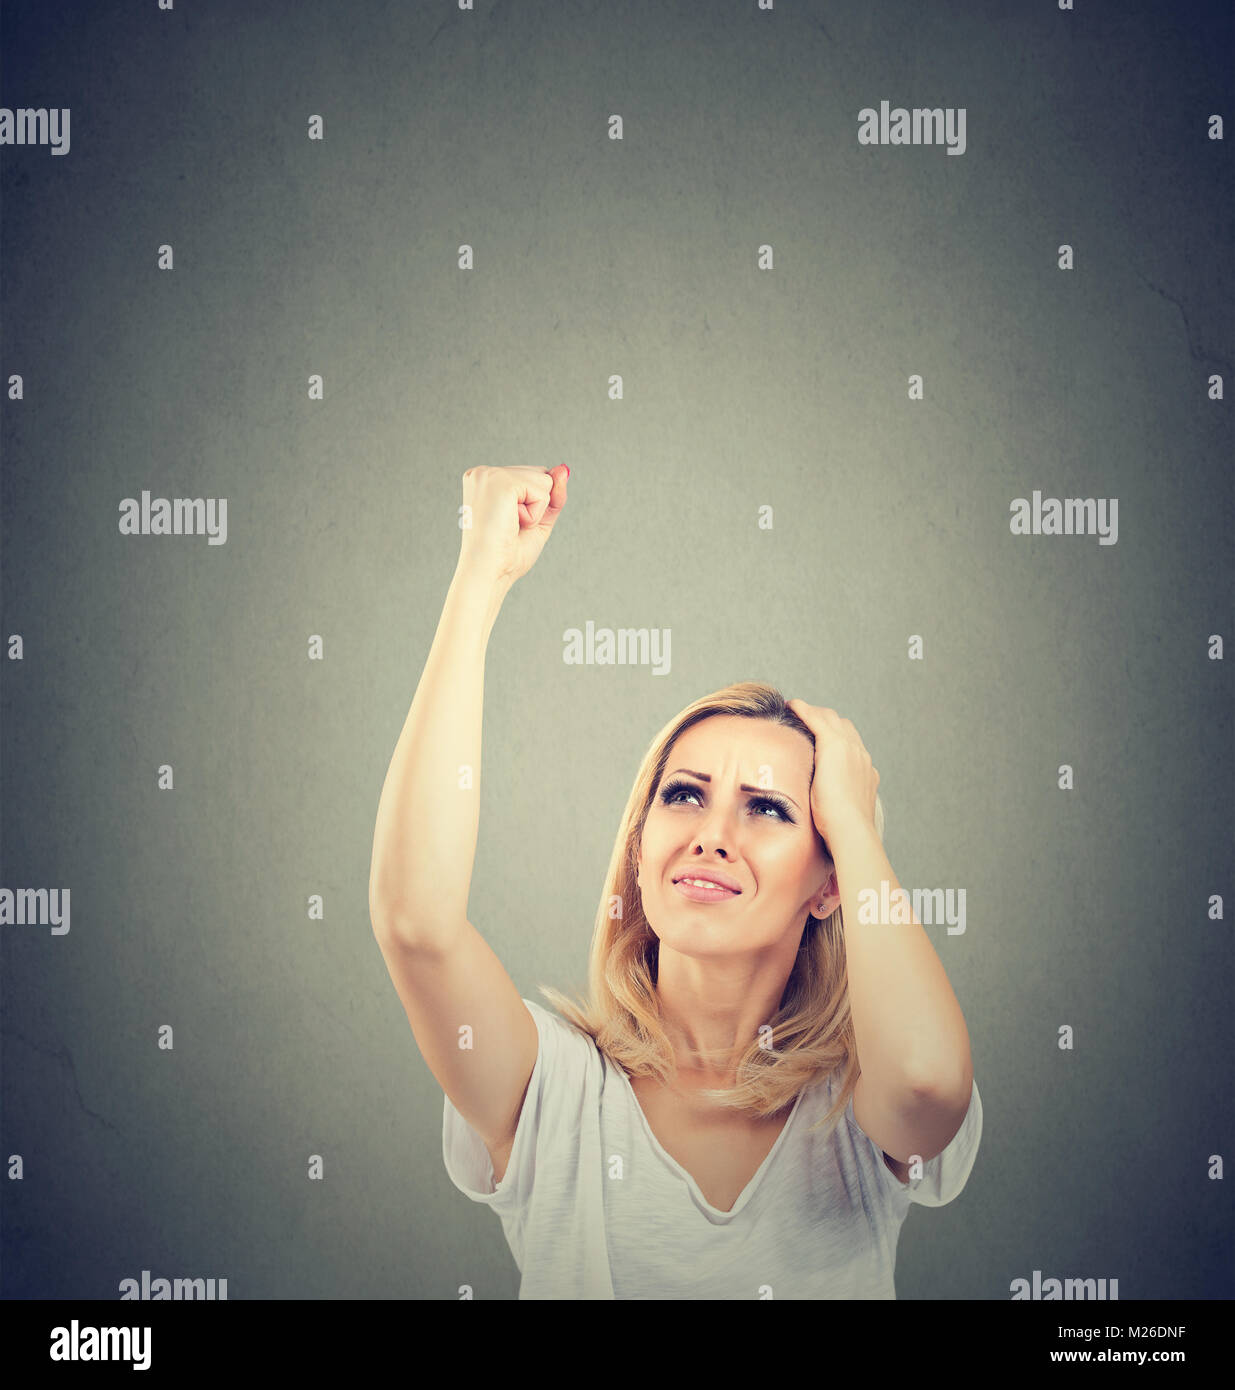 Casual woman threatening with fist while looking up disliking bad neighbors. - Stock Image